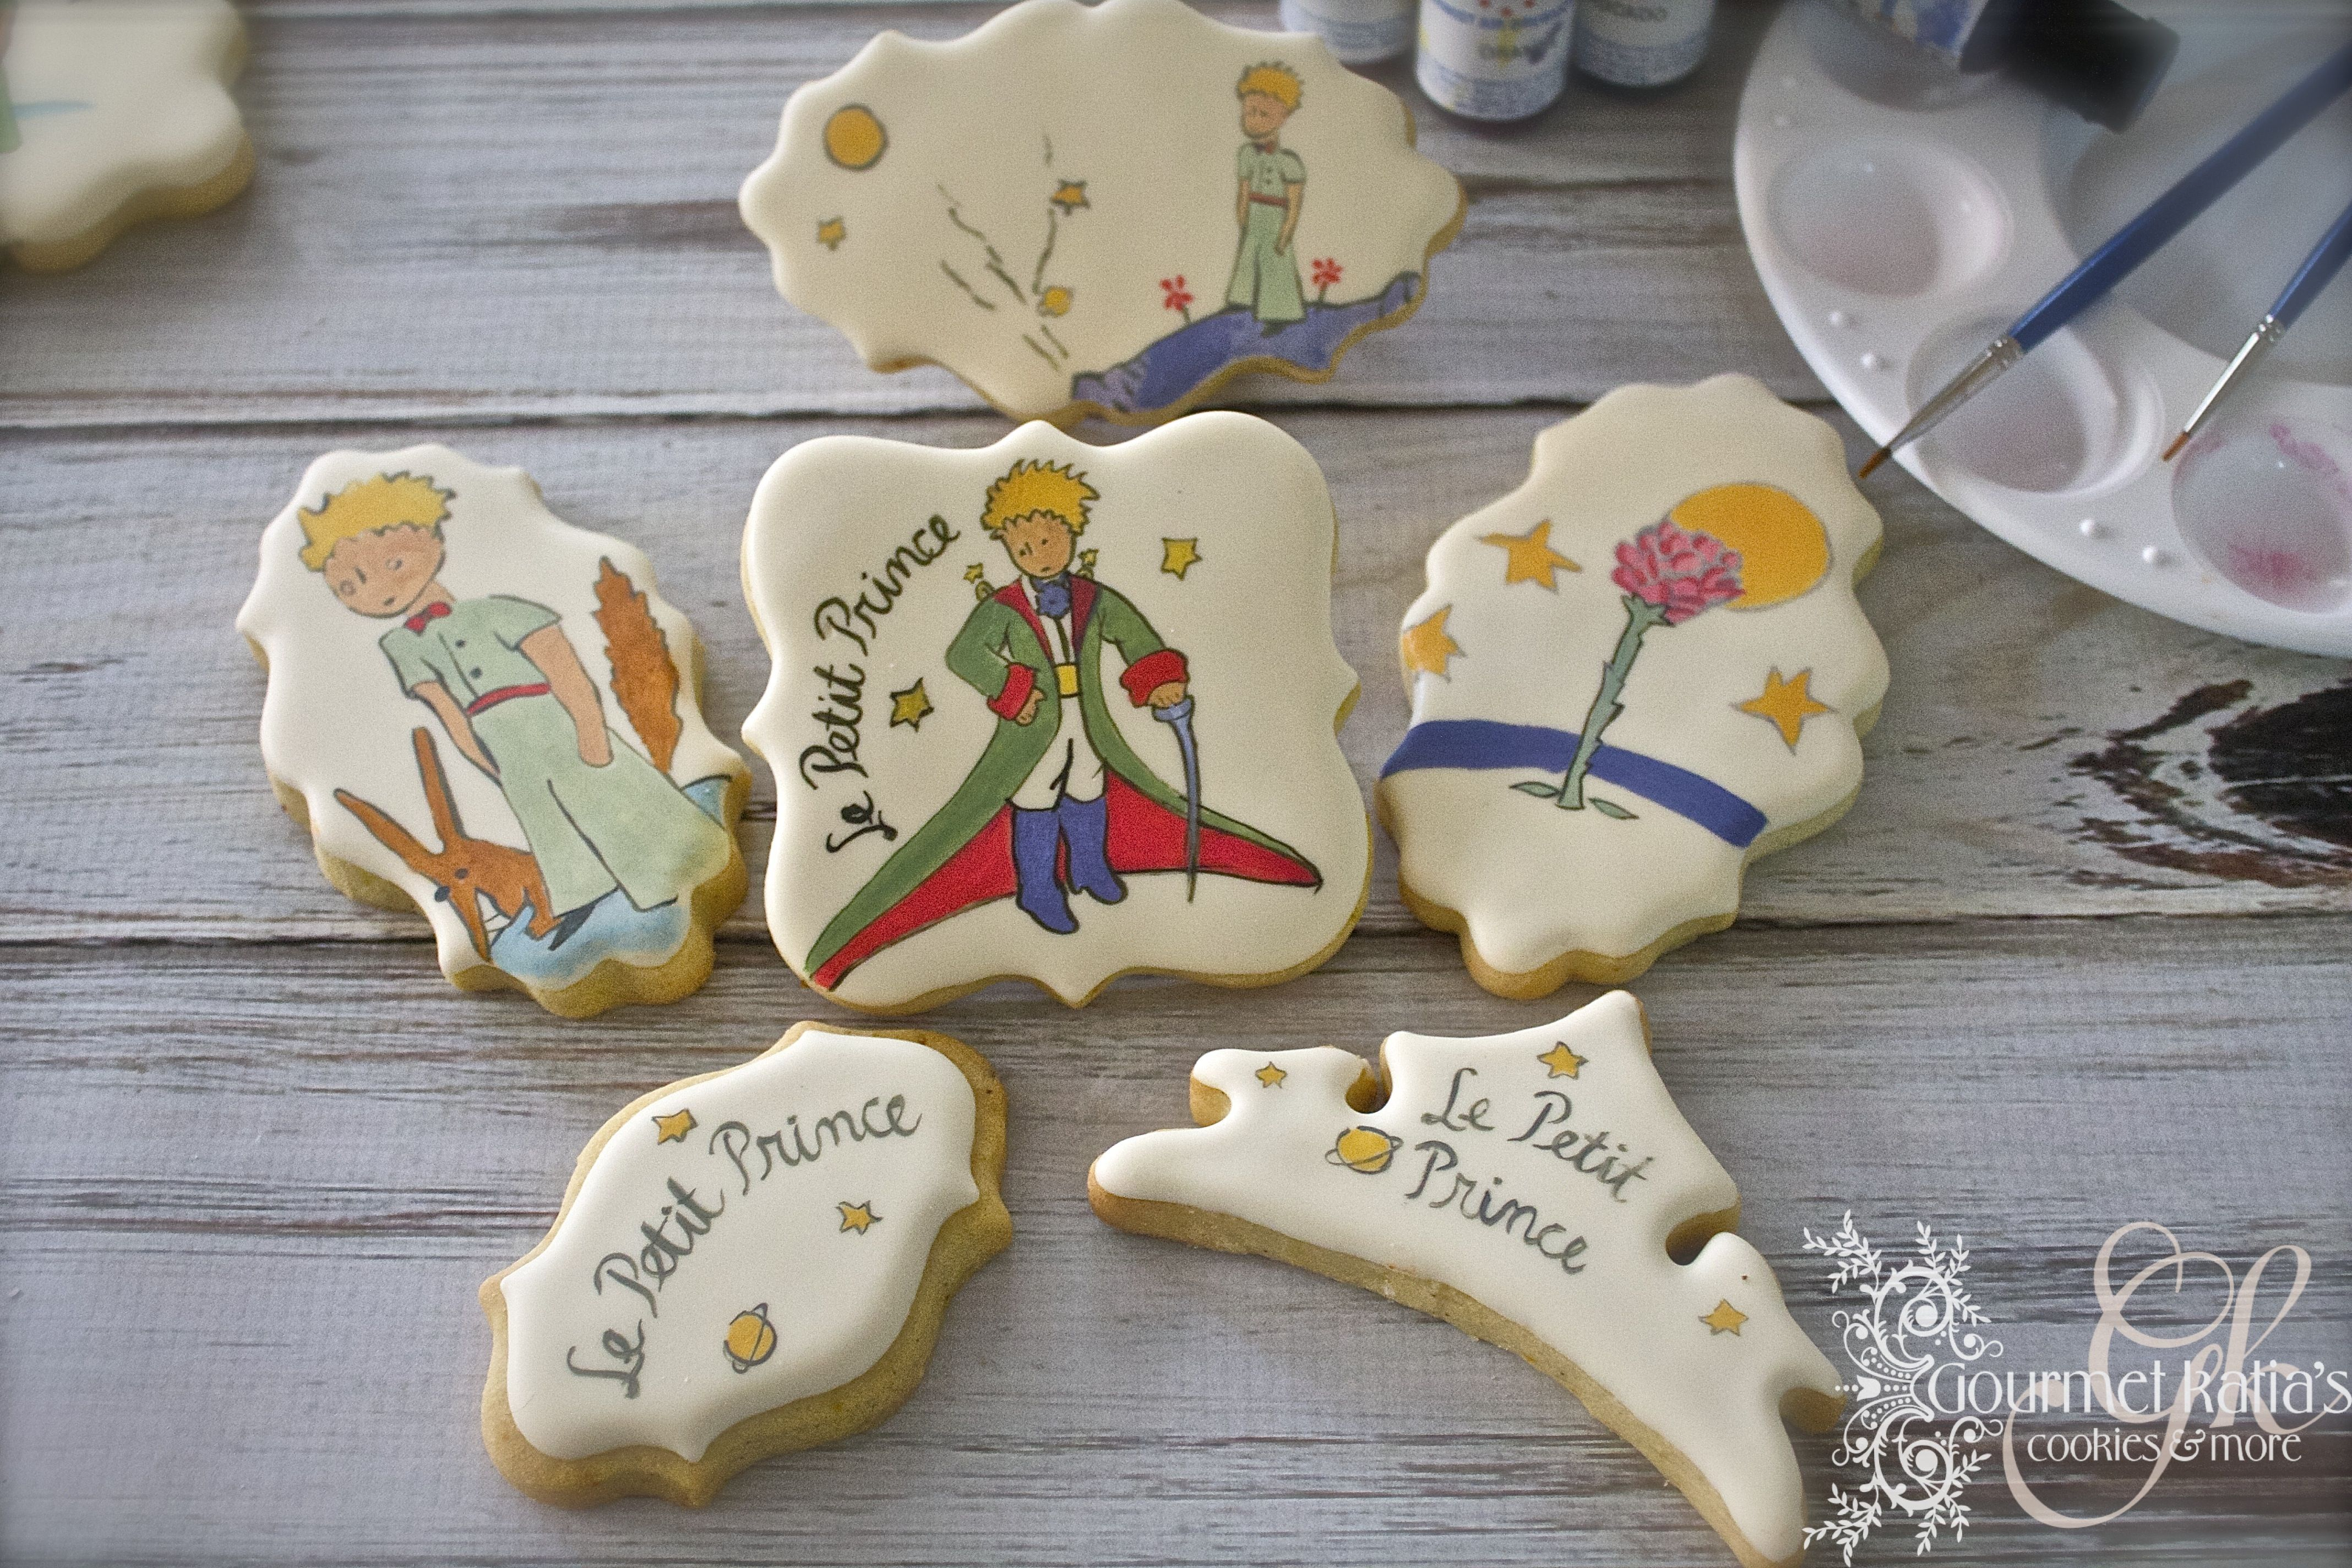 Le petite prince hand painted cookies